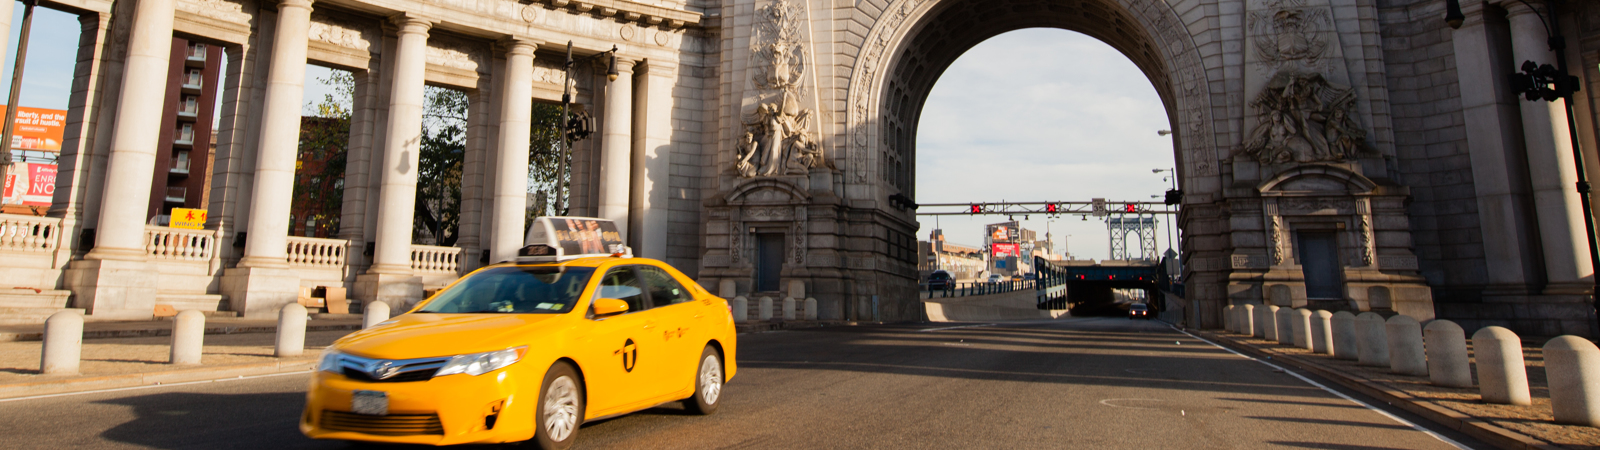 Taxi In Front Of Manhattan Bridge Archway